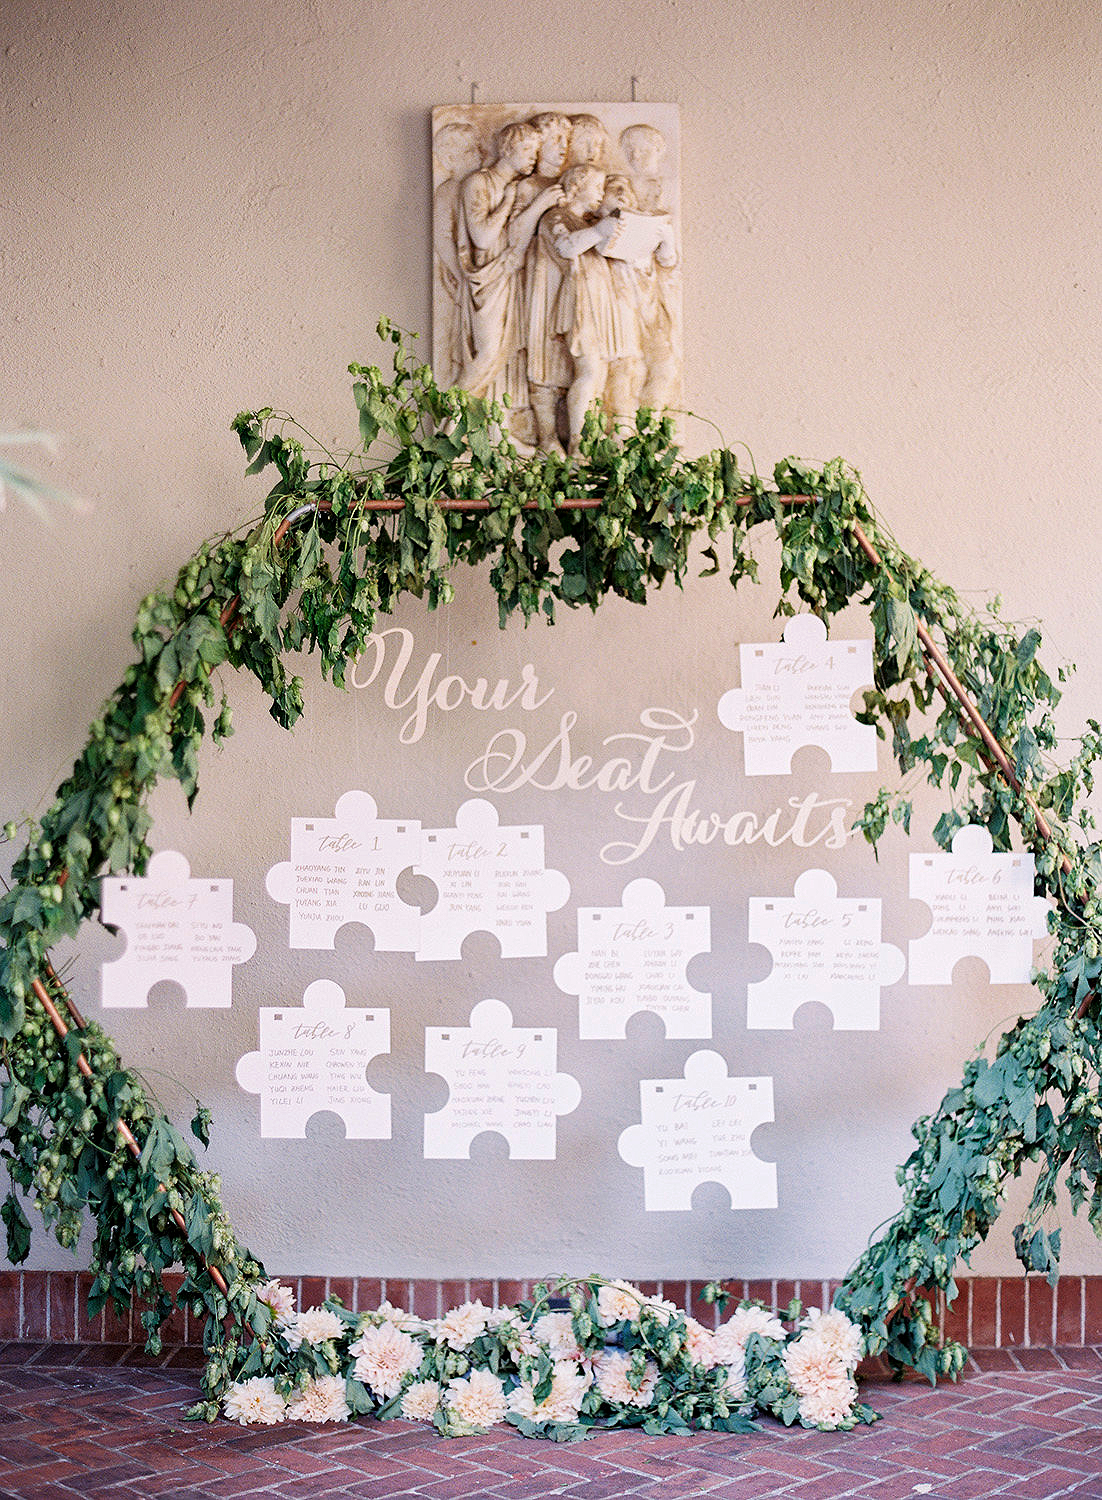 yiran yexiang wedding puzzle seating chart